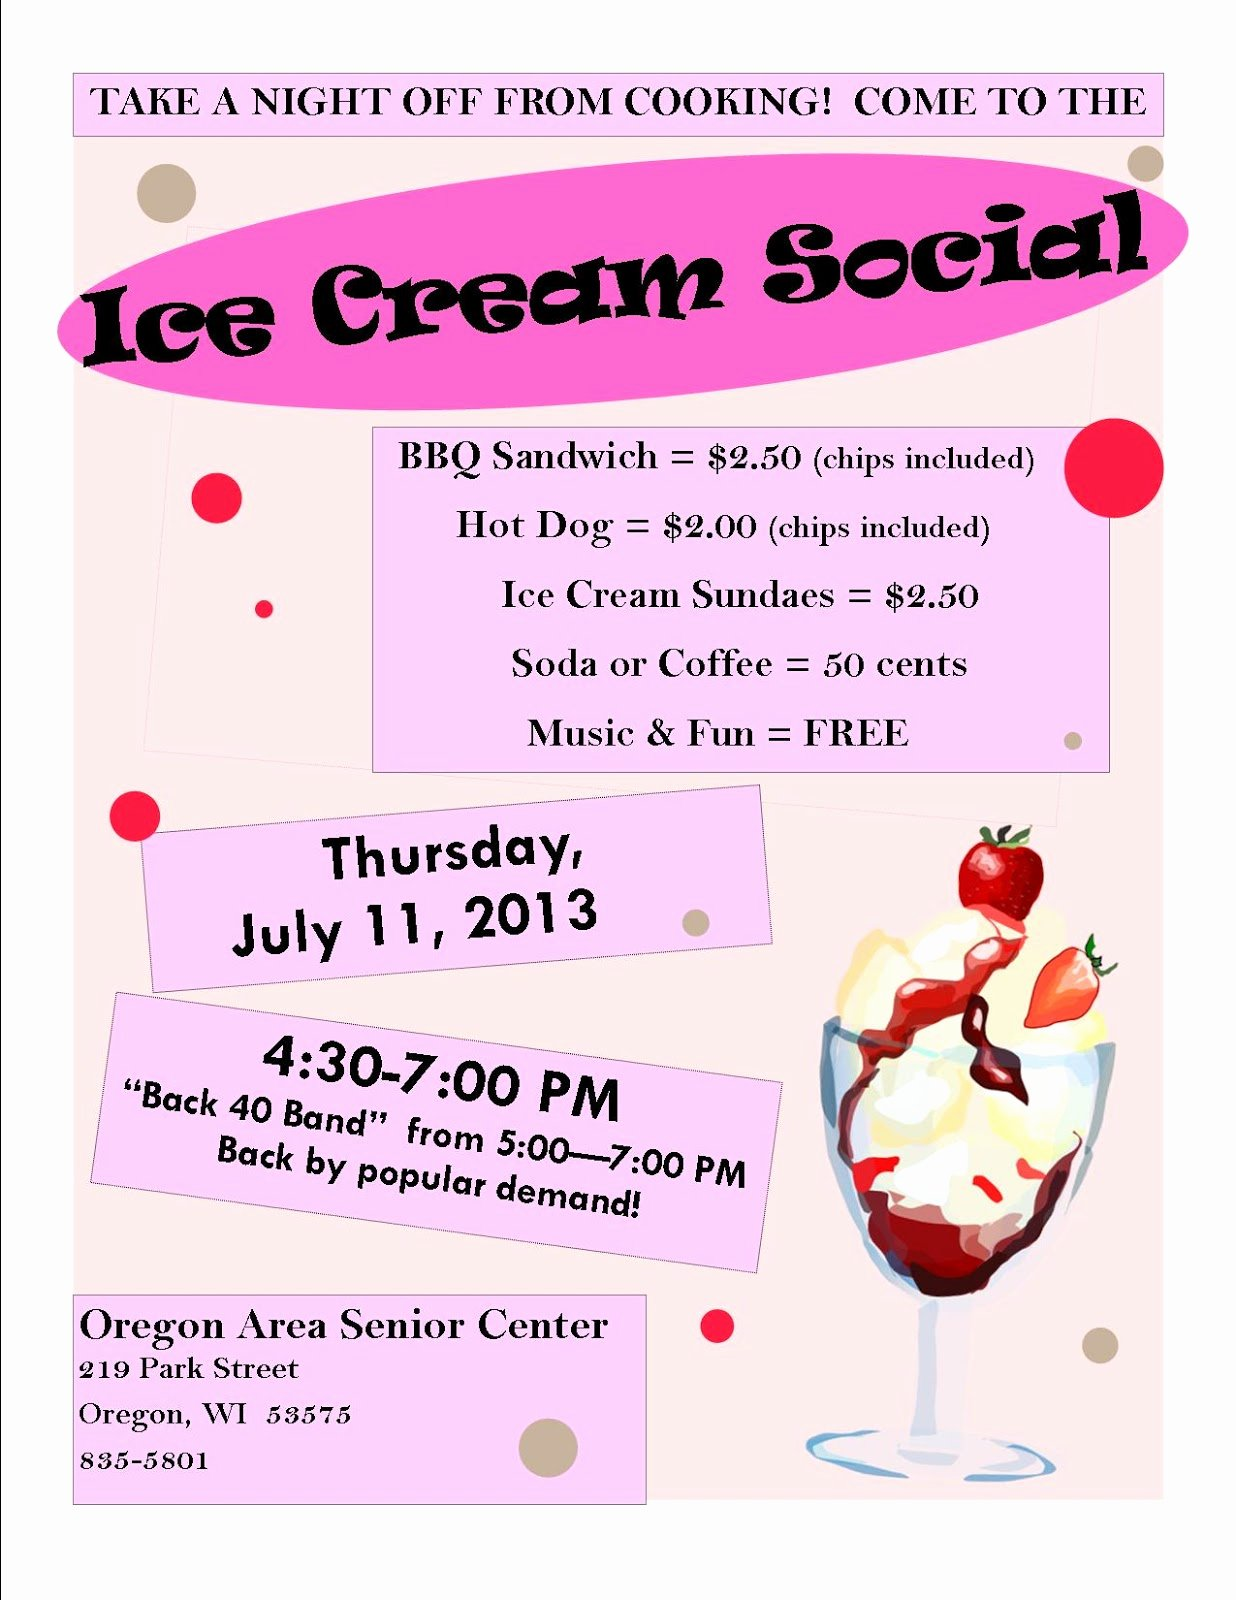 Ice Cream social Flyer Beautiful oregon area Senior Center Council On Aging 07 01 2013 08 01 2013